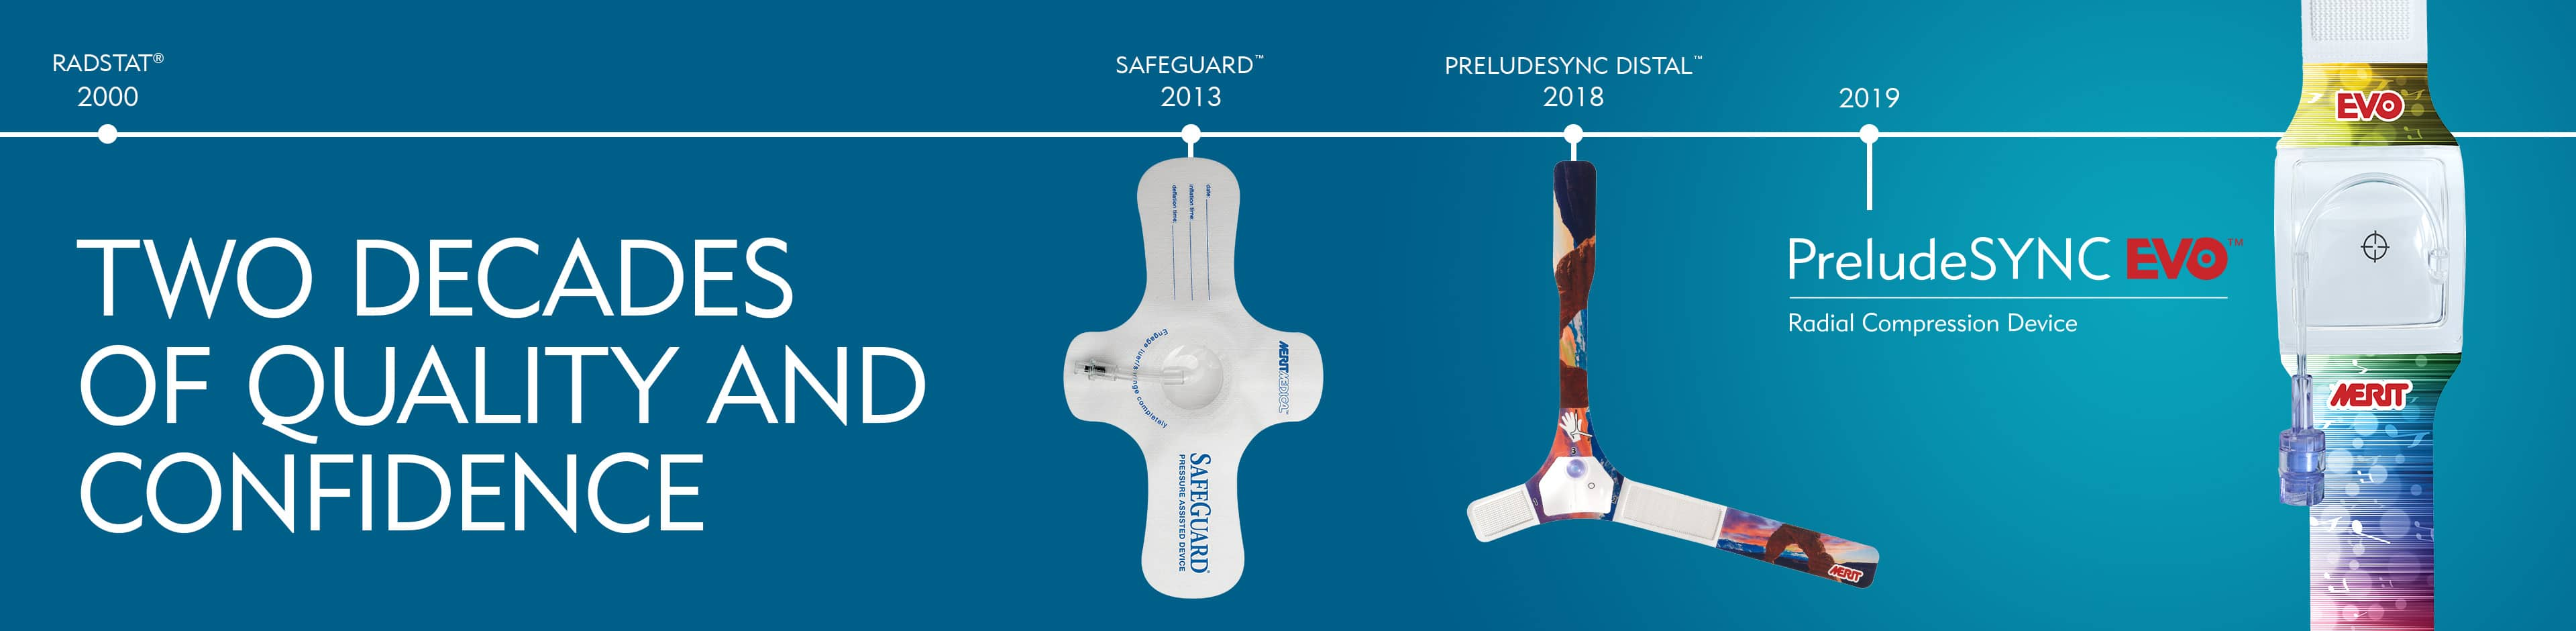 Two Decades of Quality & Confidence in Compression Devices - Merit Medical